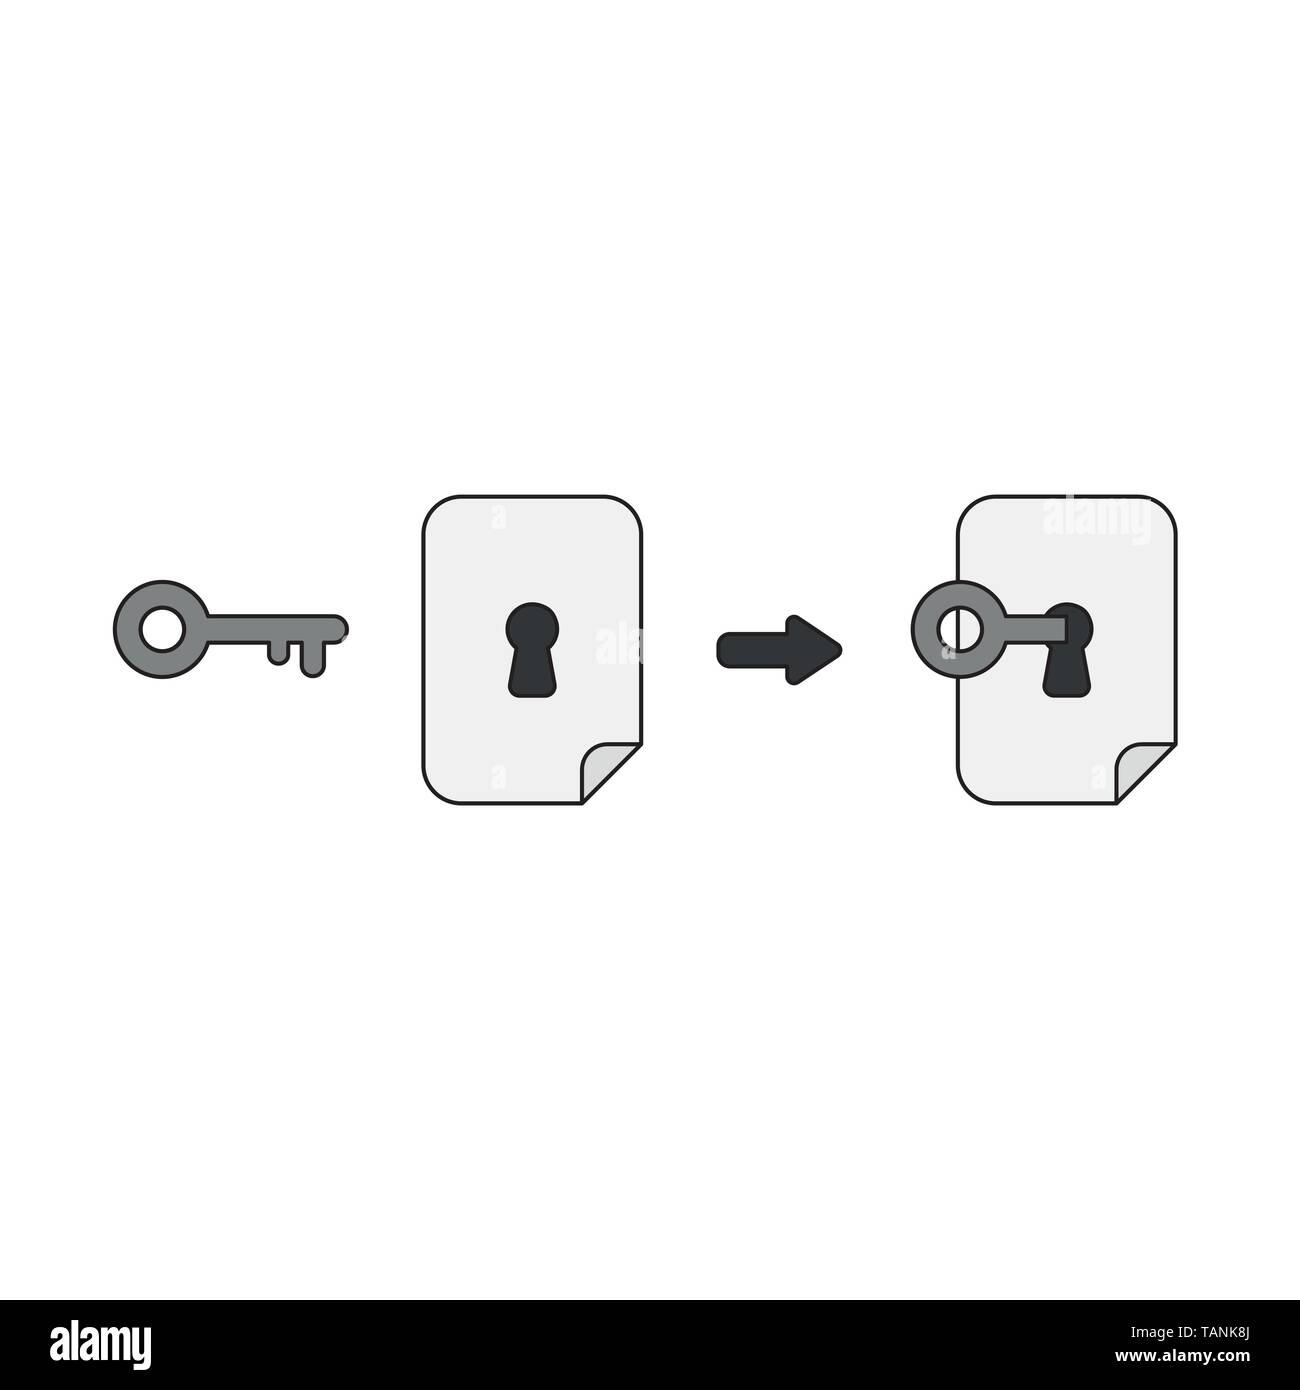 Vector icon concept of key unlock or lock paper keyhole. Black outlines and colored. - Stock Image